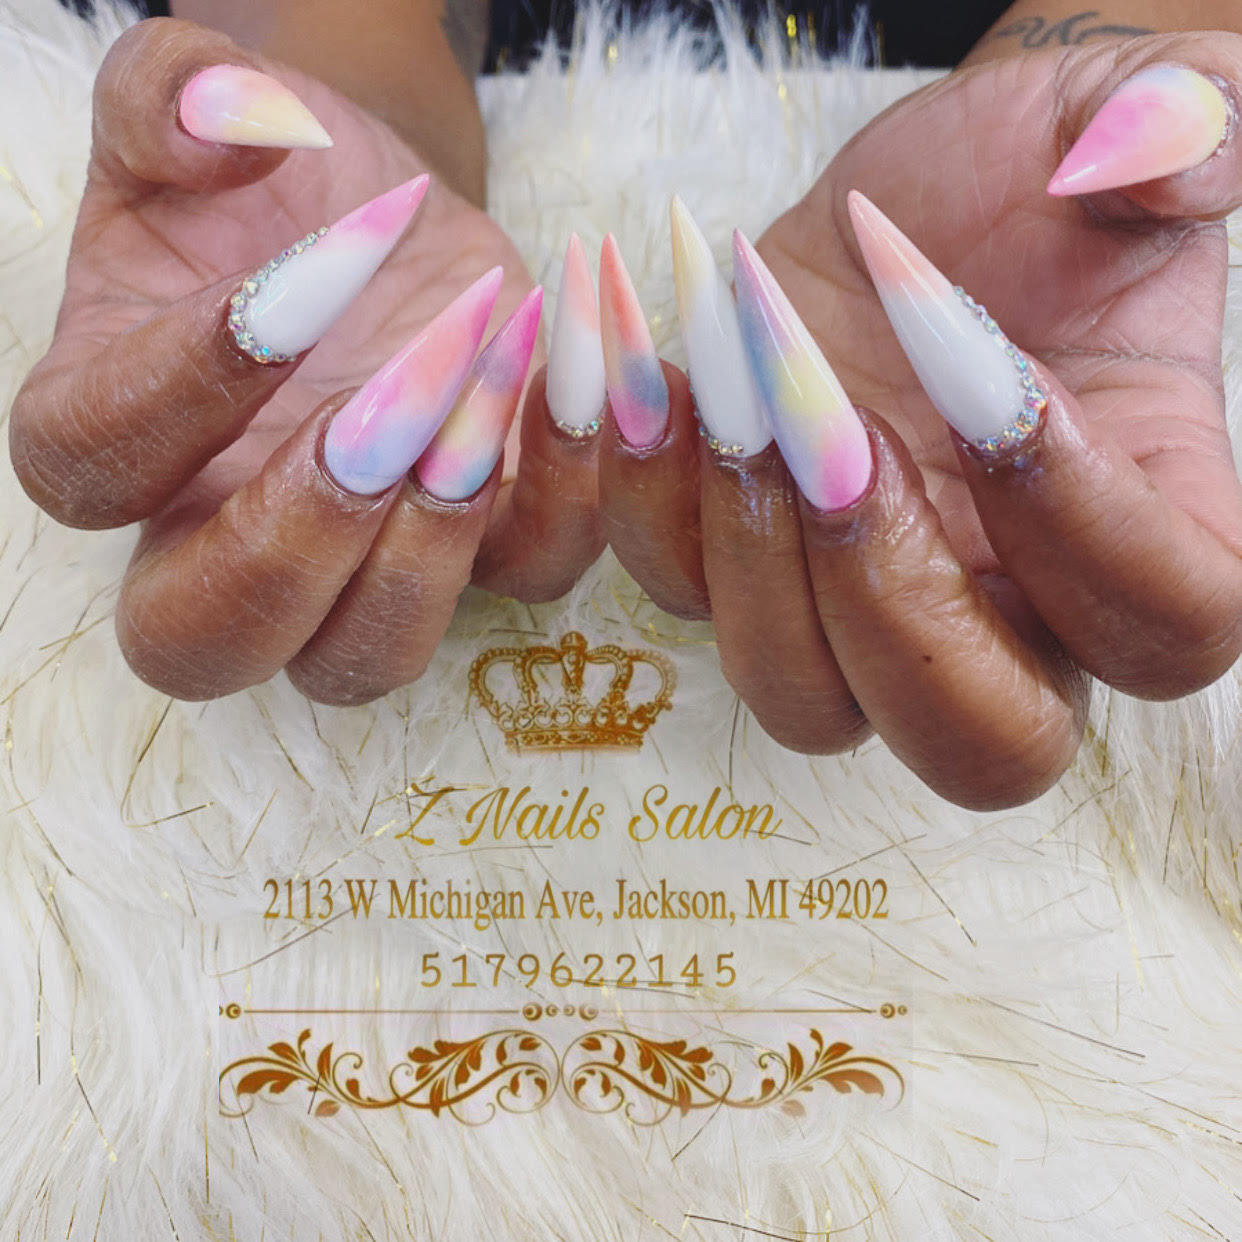 Z Nails - Nail salon in Jackson, MI 49202